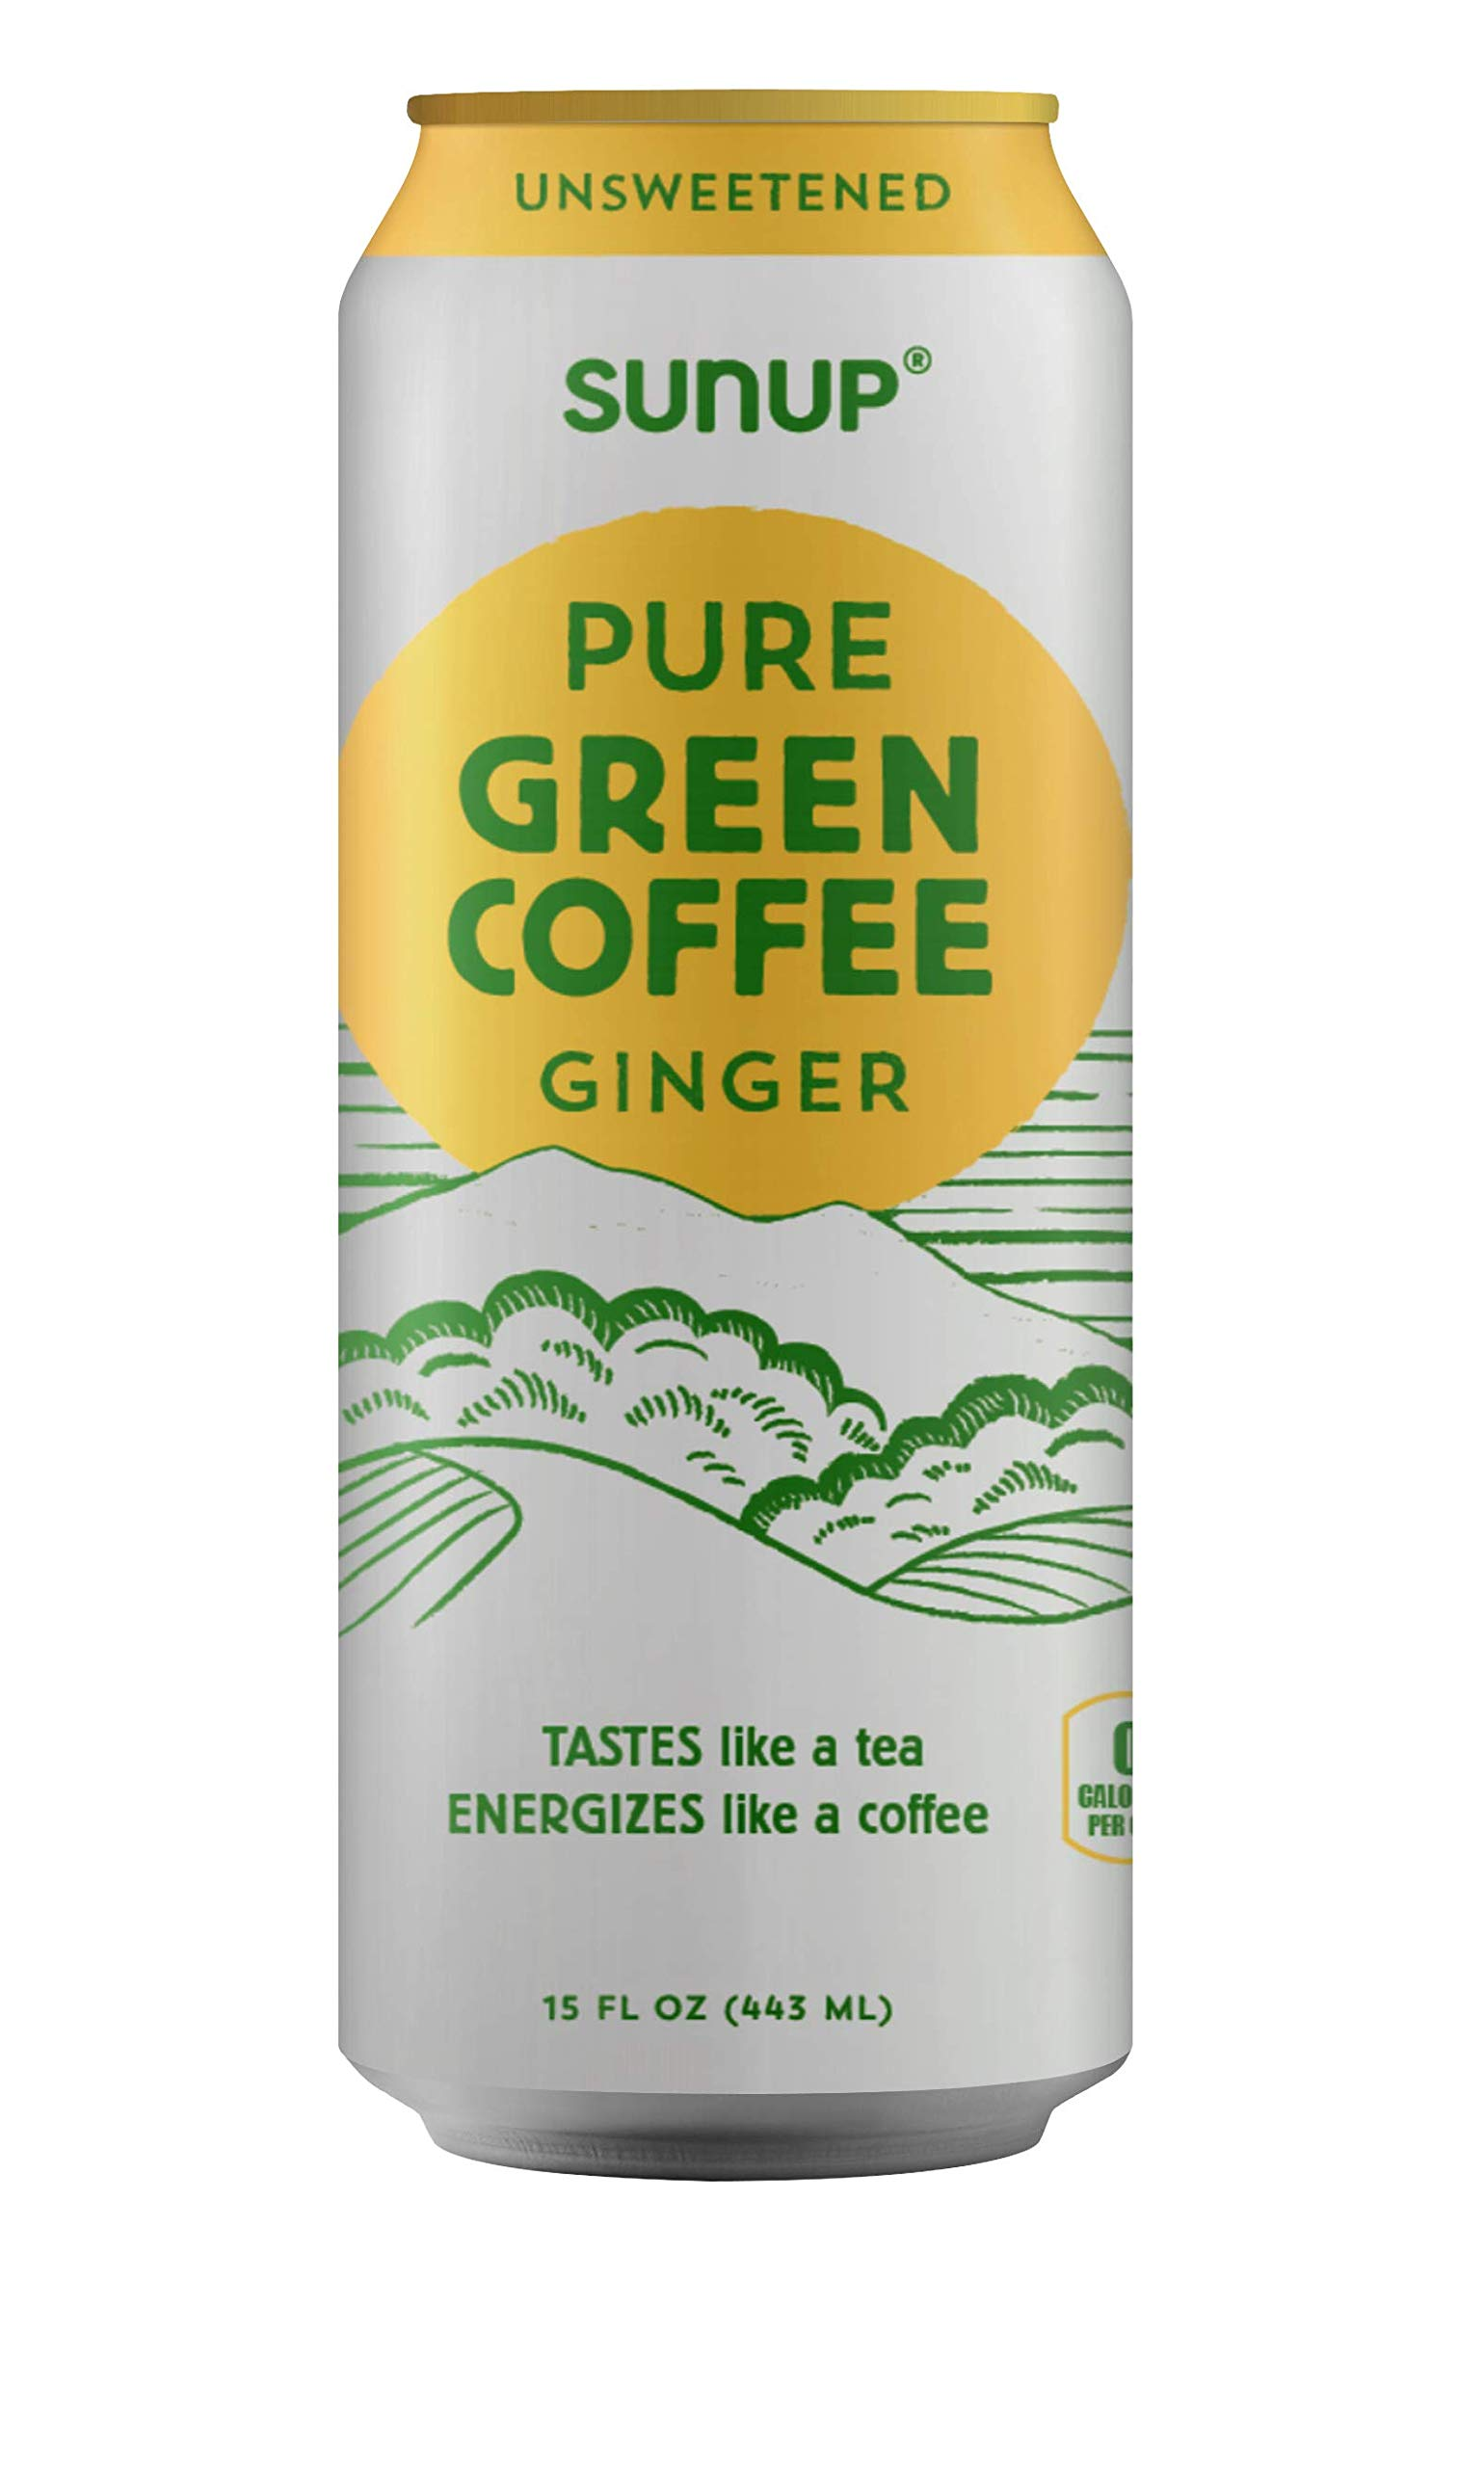 Sunup Pure Green Coffee, Unsweetened Ginger, Made Smooth & Strong From Raw ''Green'' Coffee Beans, Naturally High Energy & Antioxidants, 12 Pack